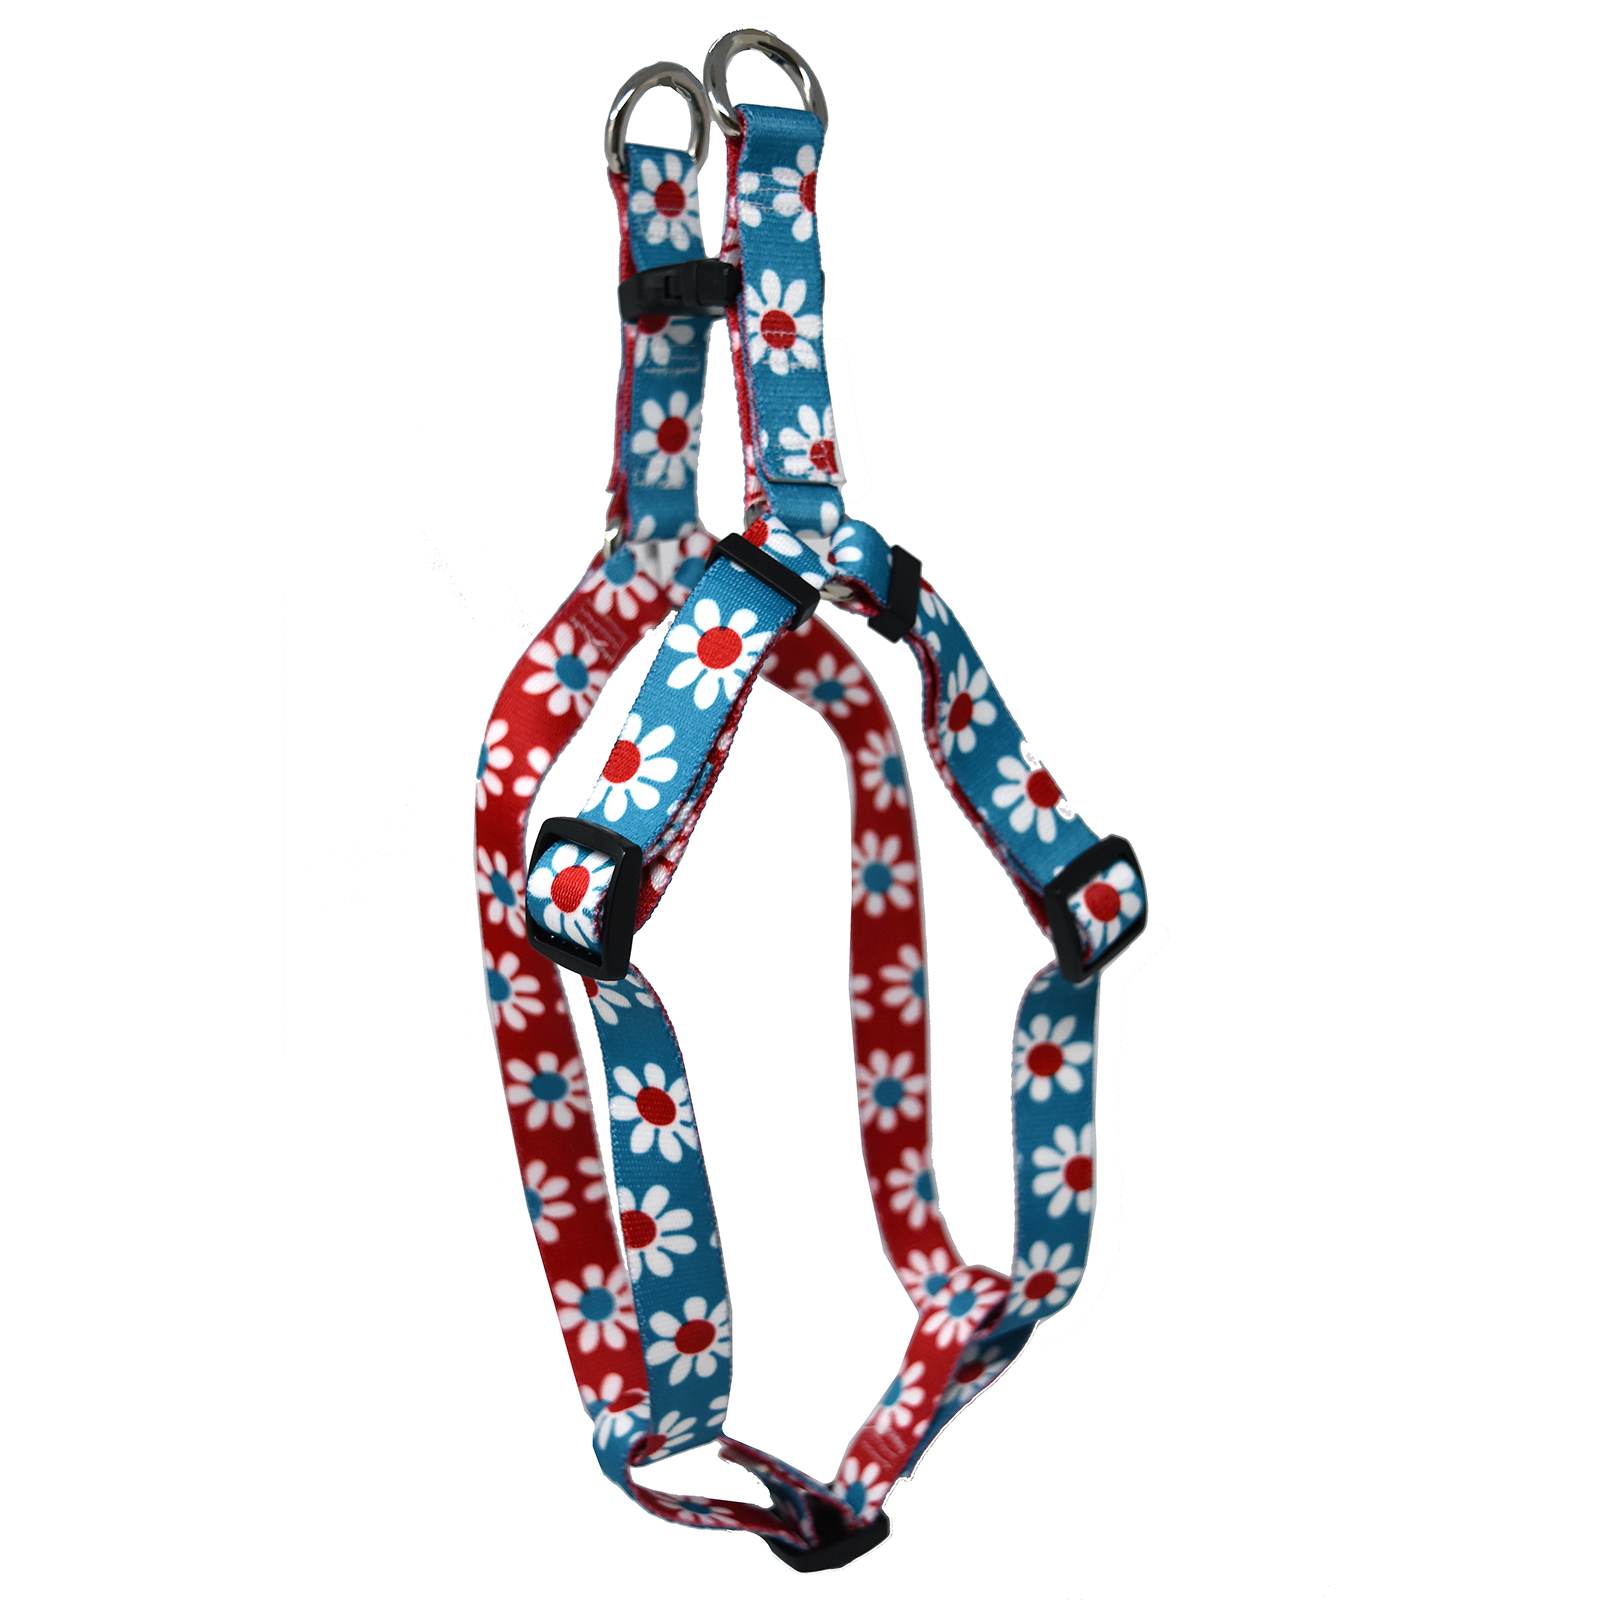 Teal & Red Daisy Step-In Harness